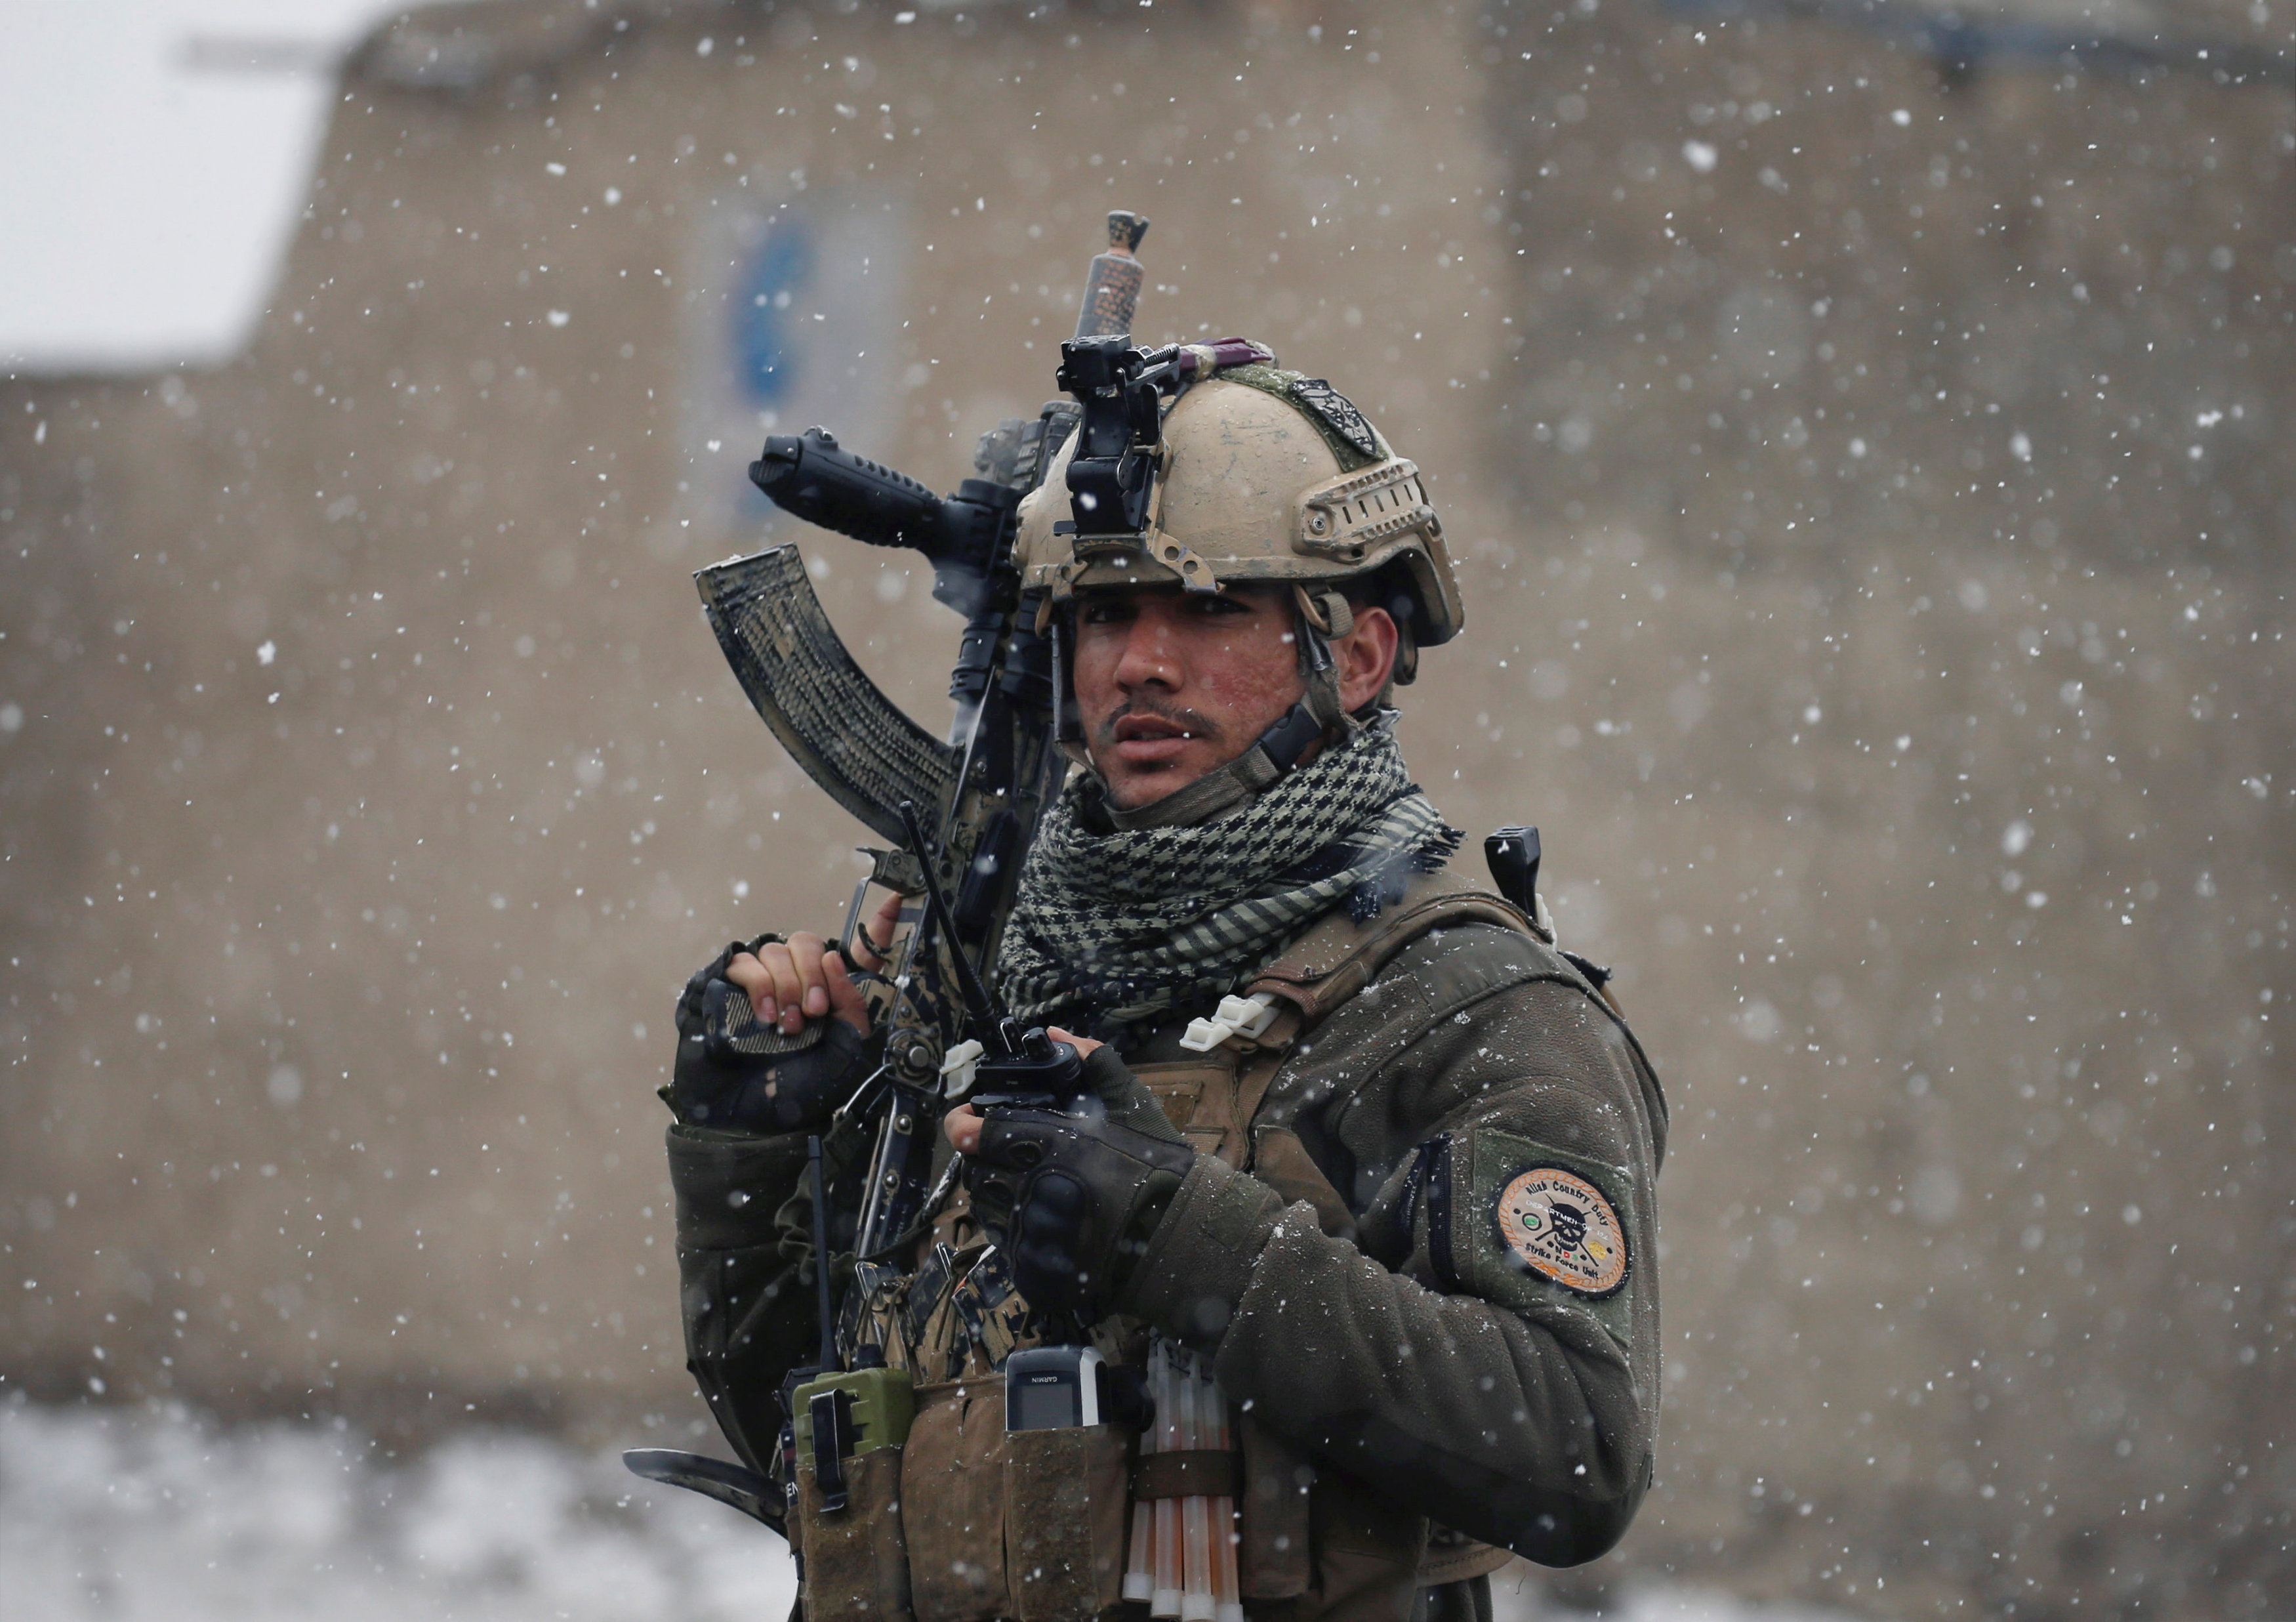 Afghanistan says Taliban will have to be defeated, after Trump rejects talks